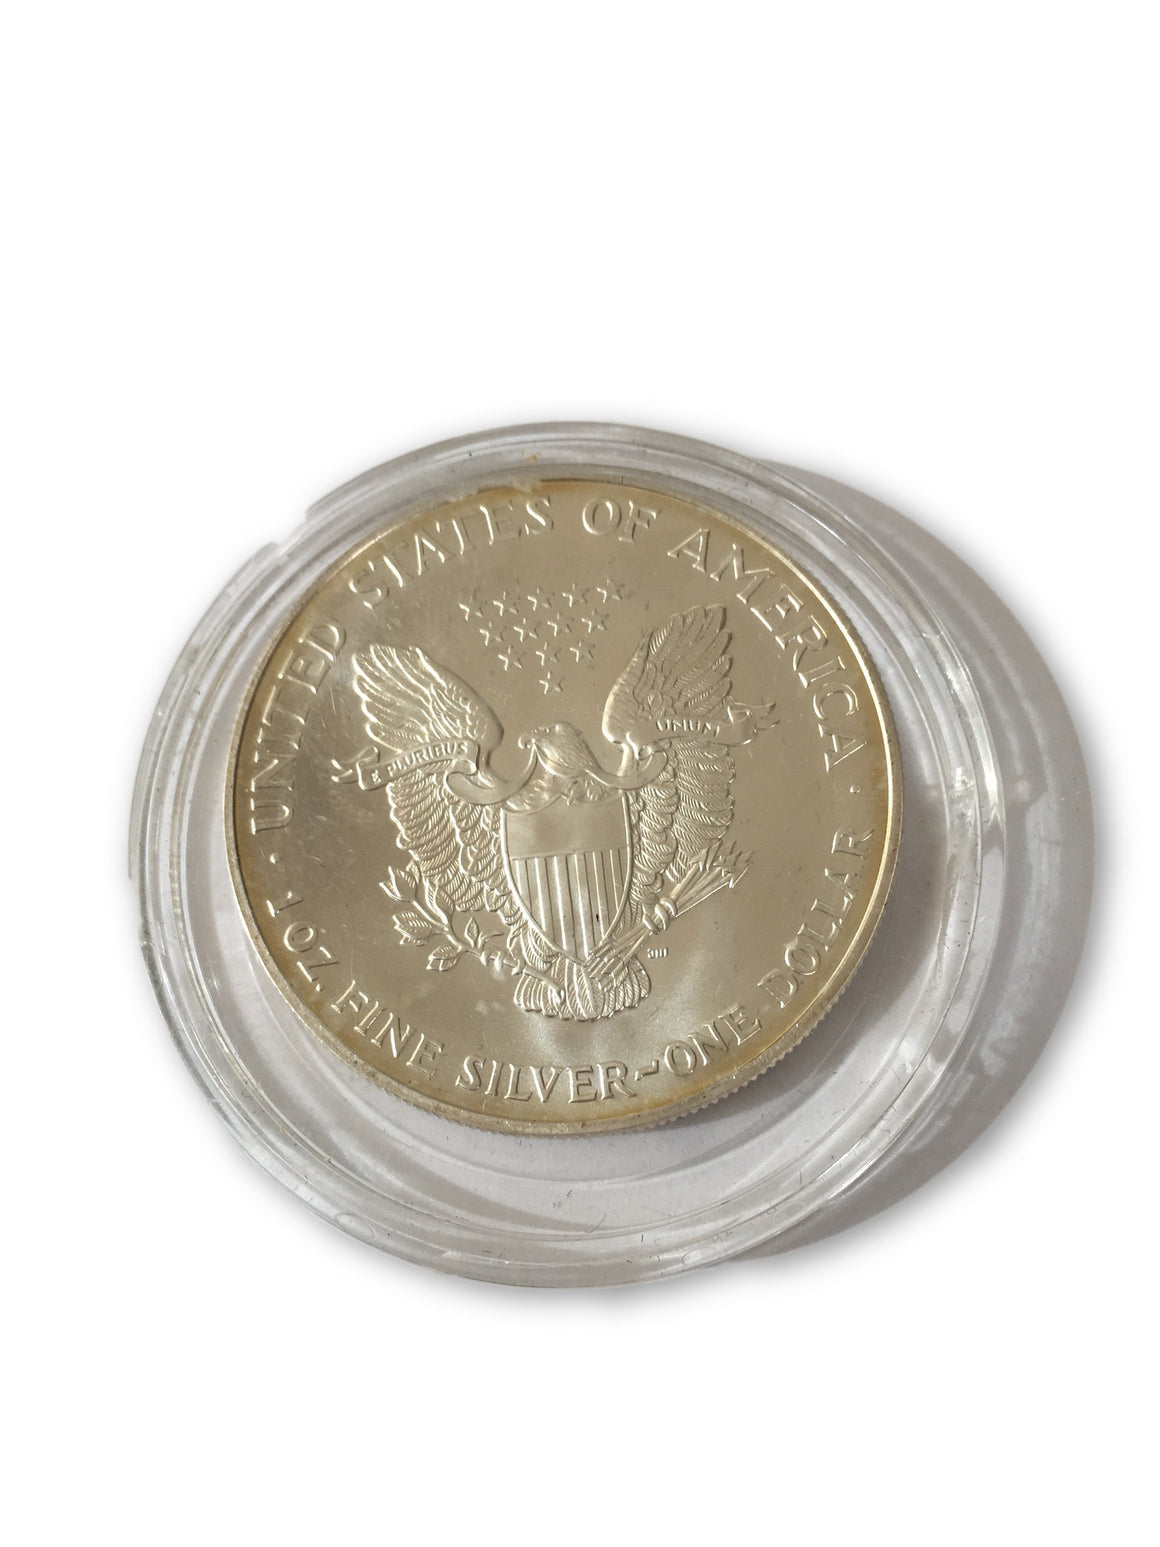 2001 American Silver Eagle colorized 1oz .999 Silver